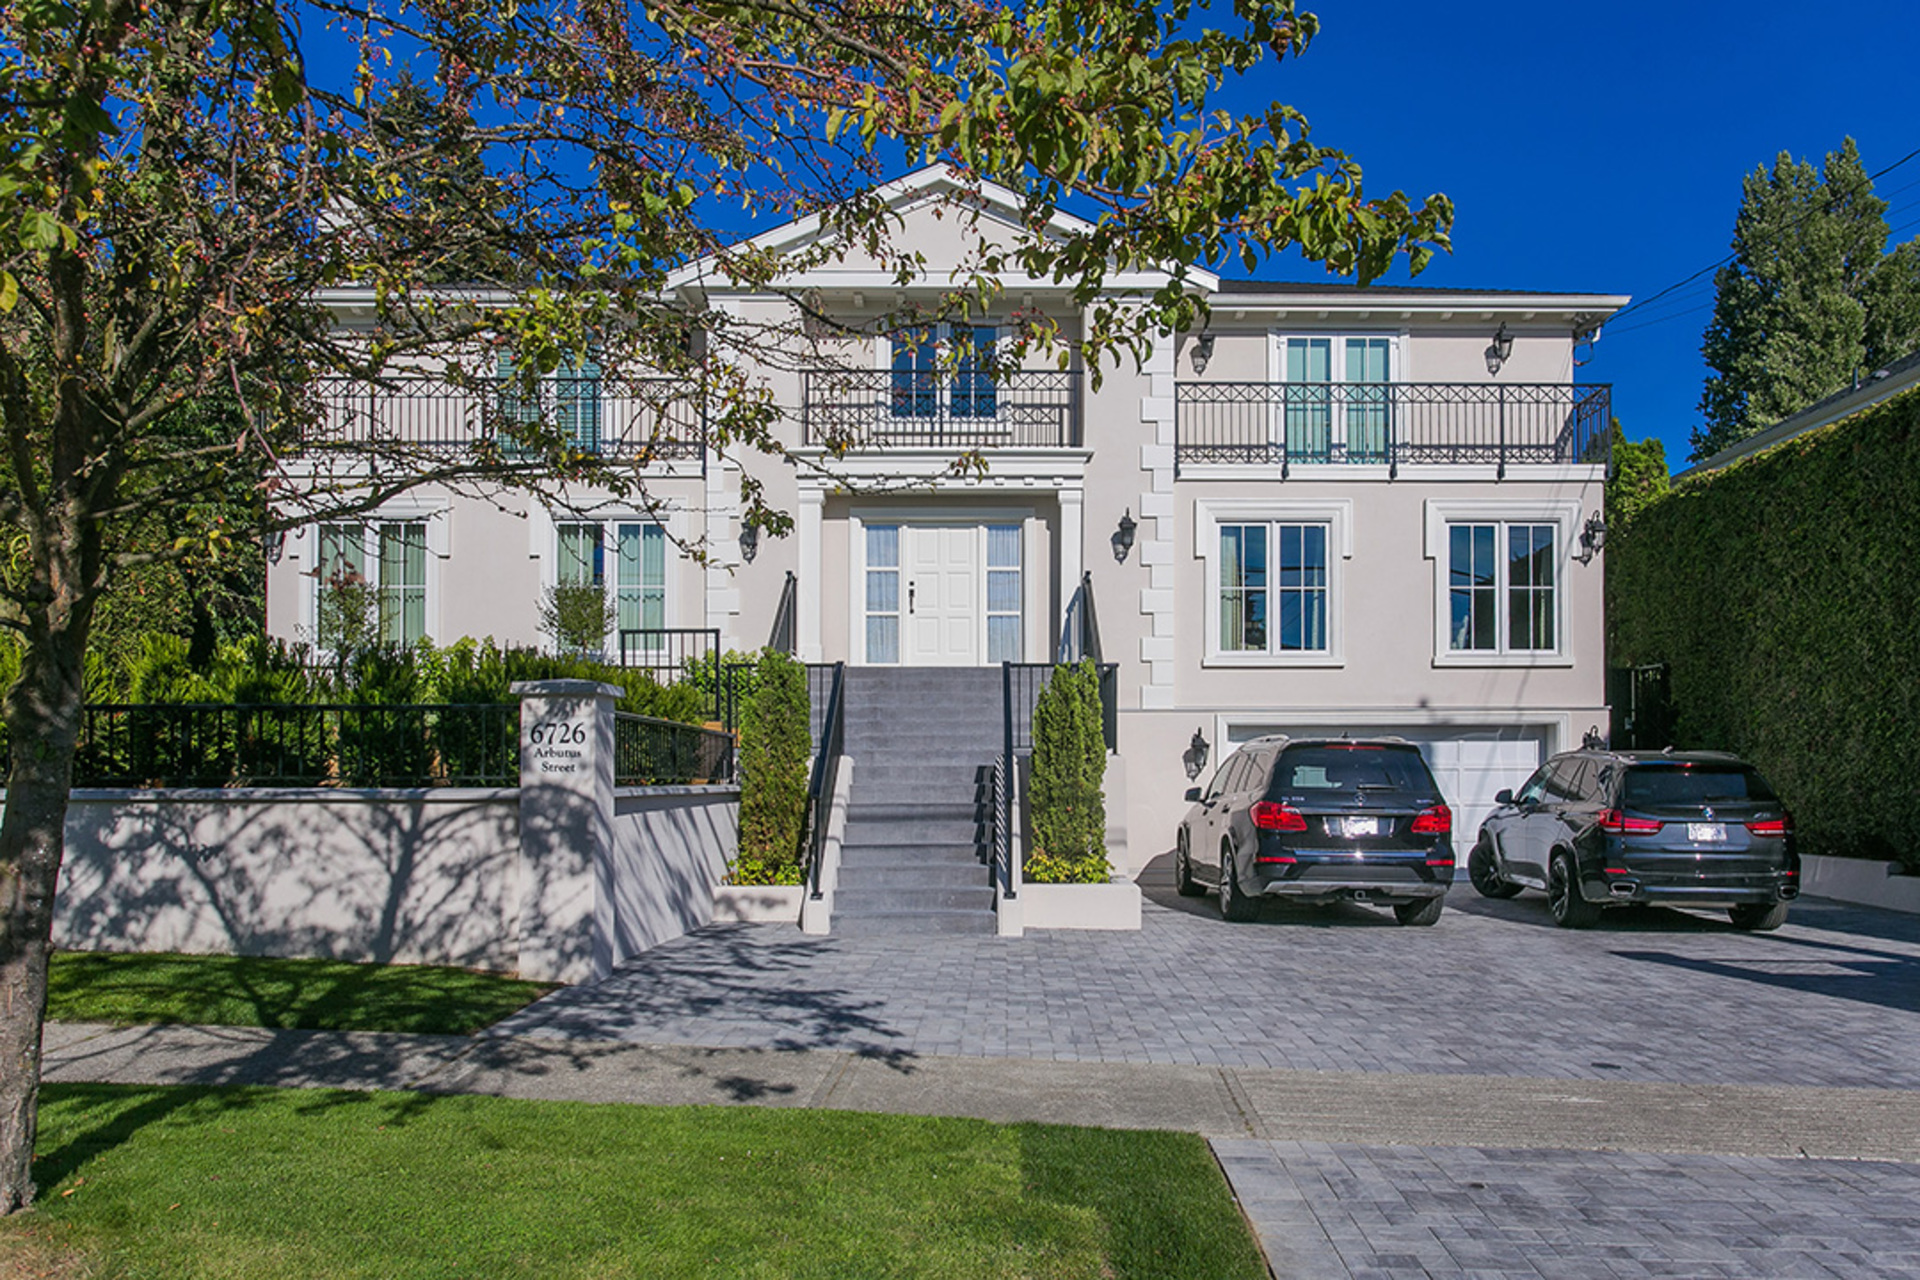 New stucco work at 6726 Arbutus Street, Southlands, Vancouver West